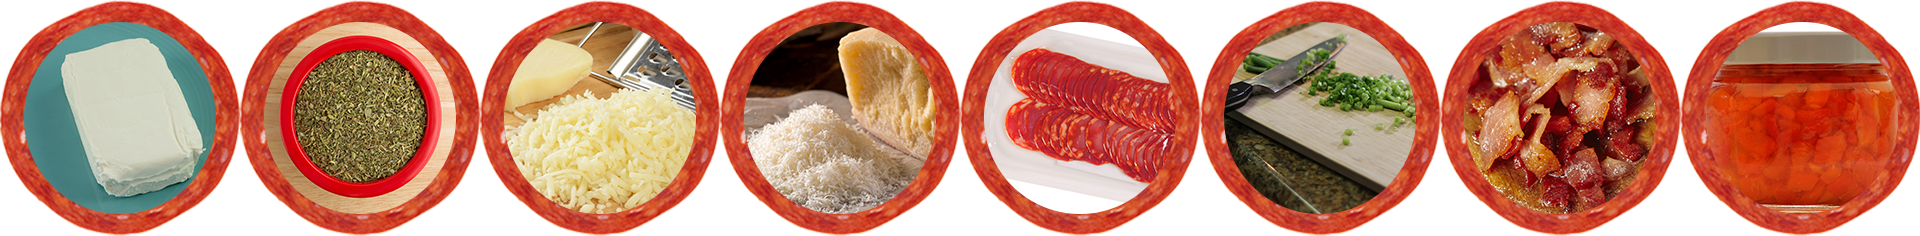 pepperoni football dip ingredients